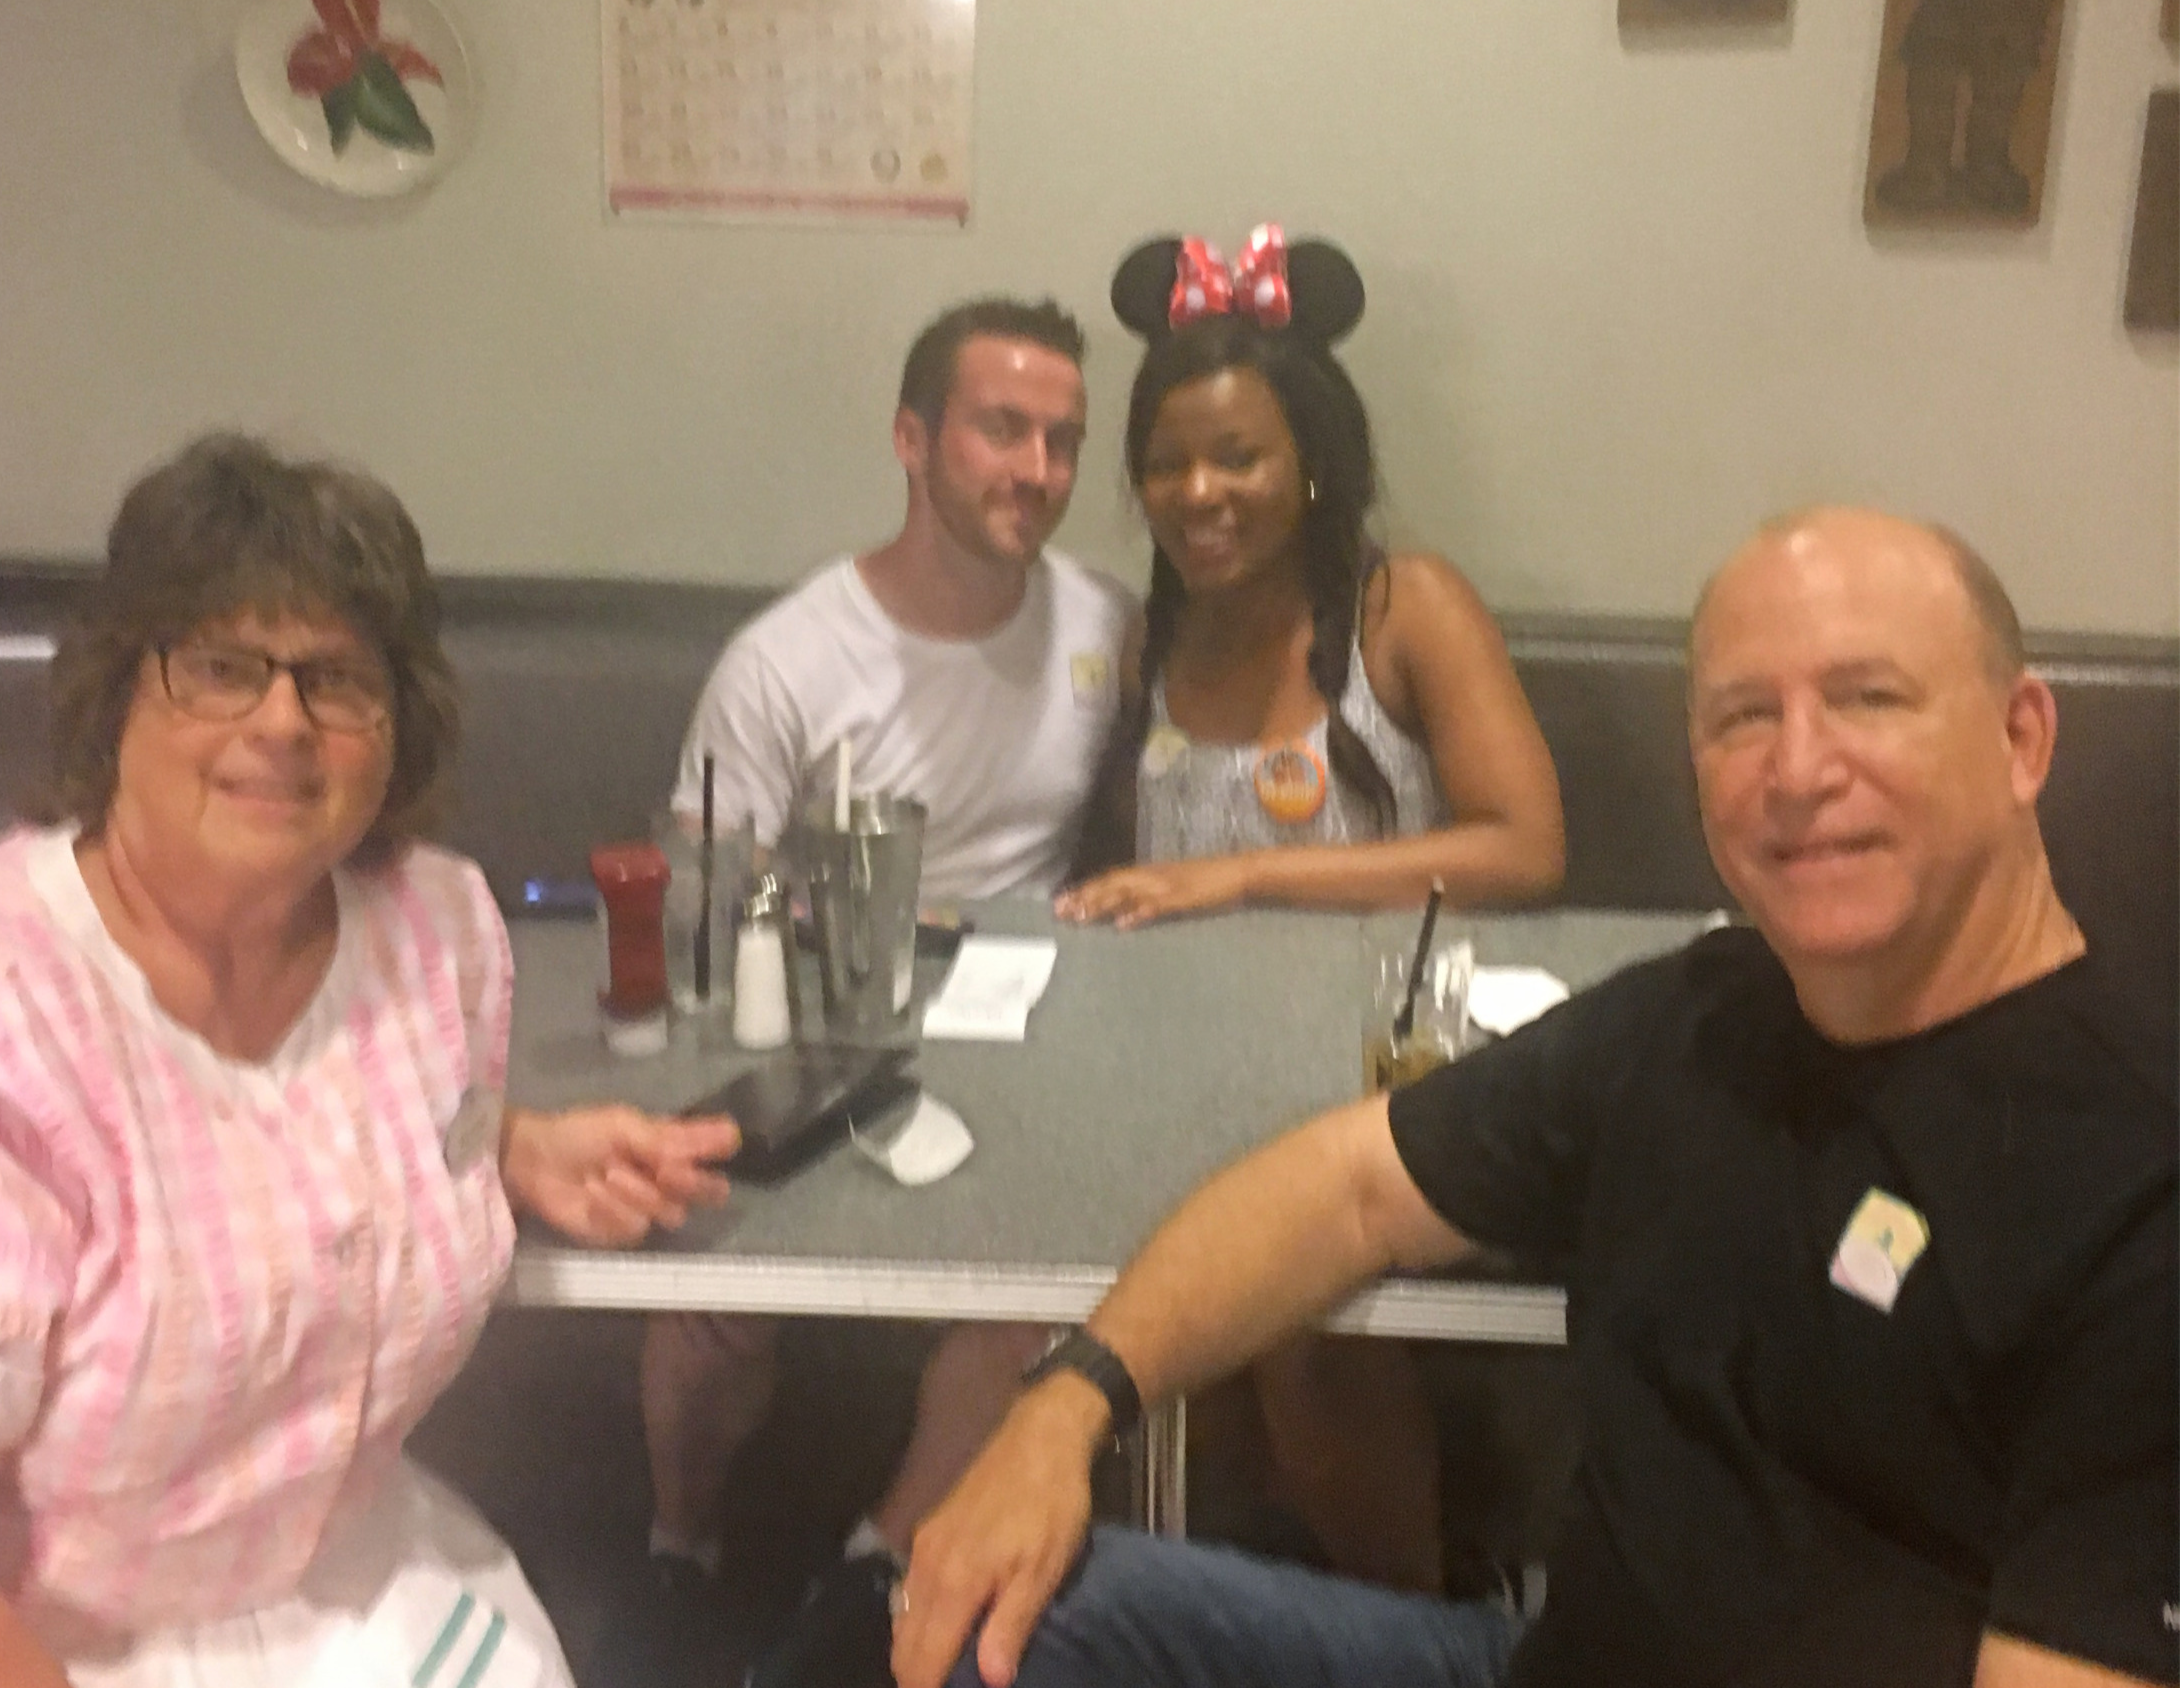 Dine with a Former Imagineer